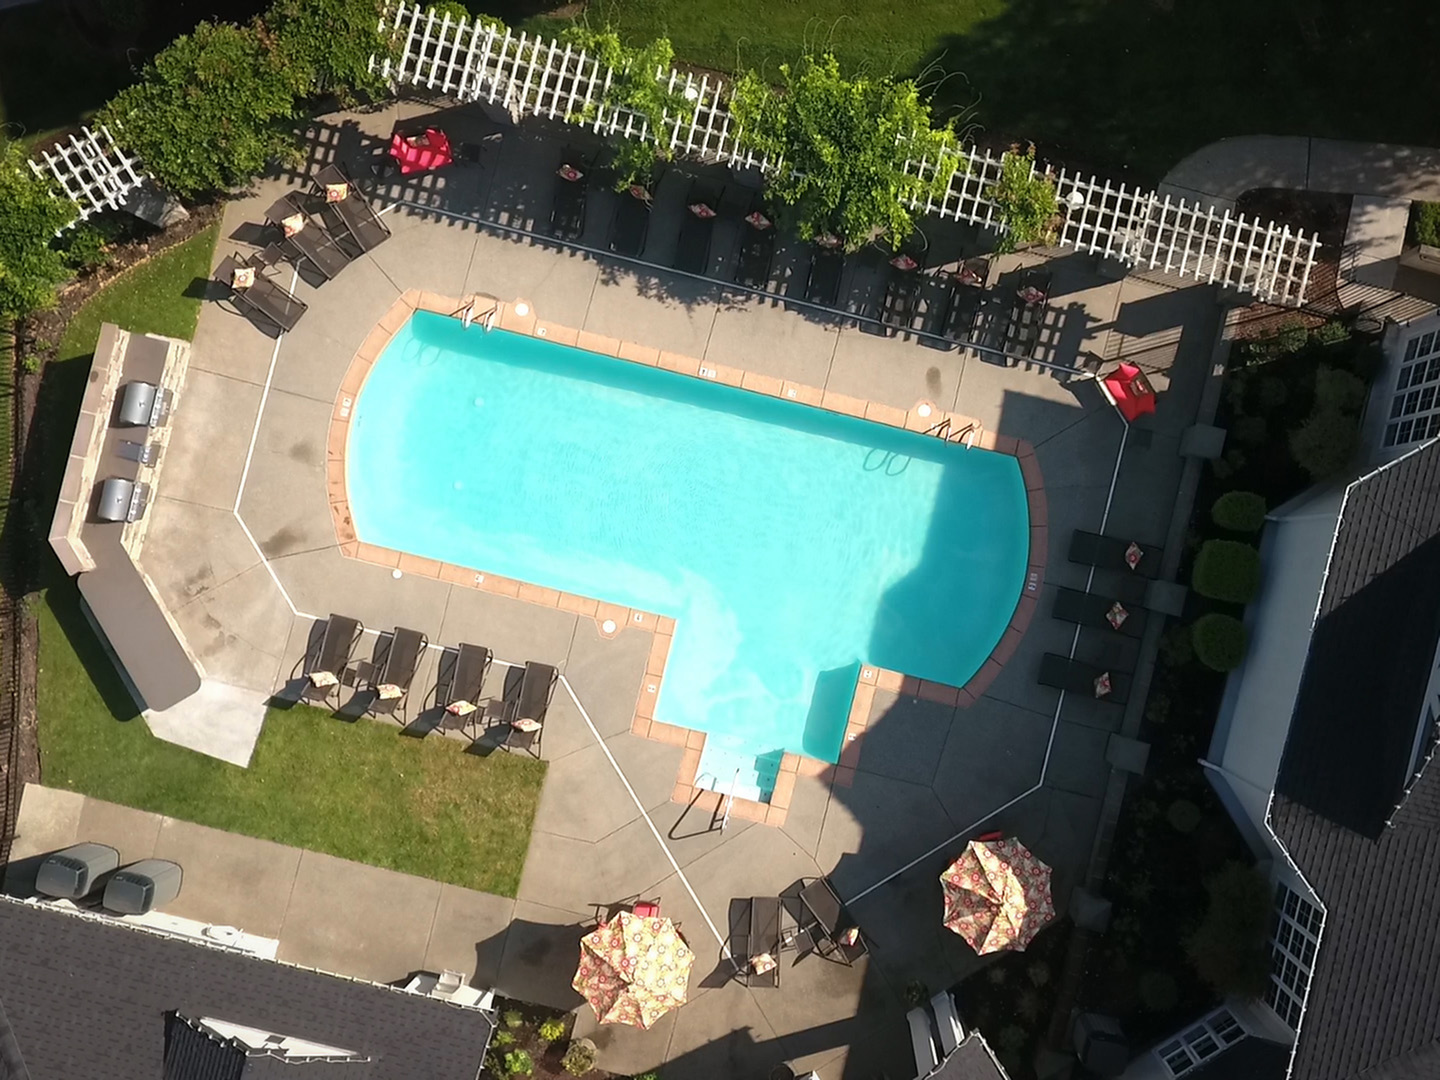 Apartment Swimming Pool | Puyallup WA Apartments For Rent | Willow Hill Apartments